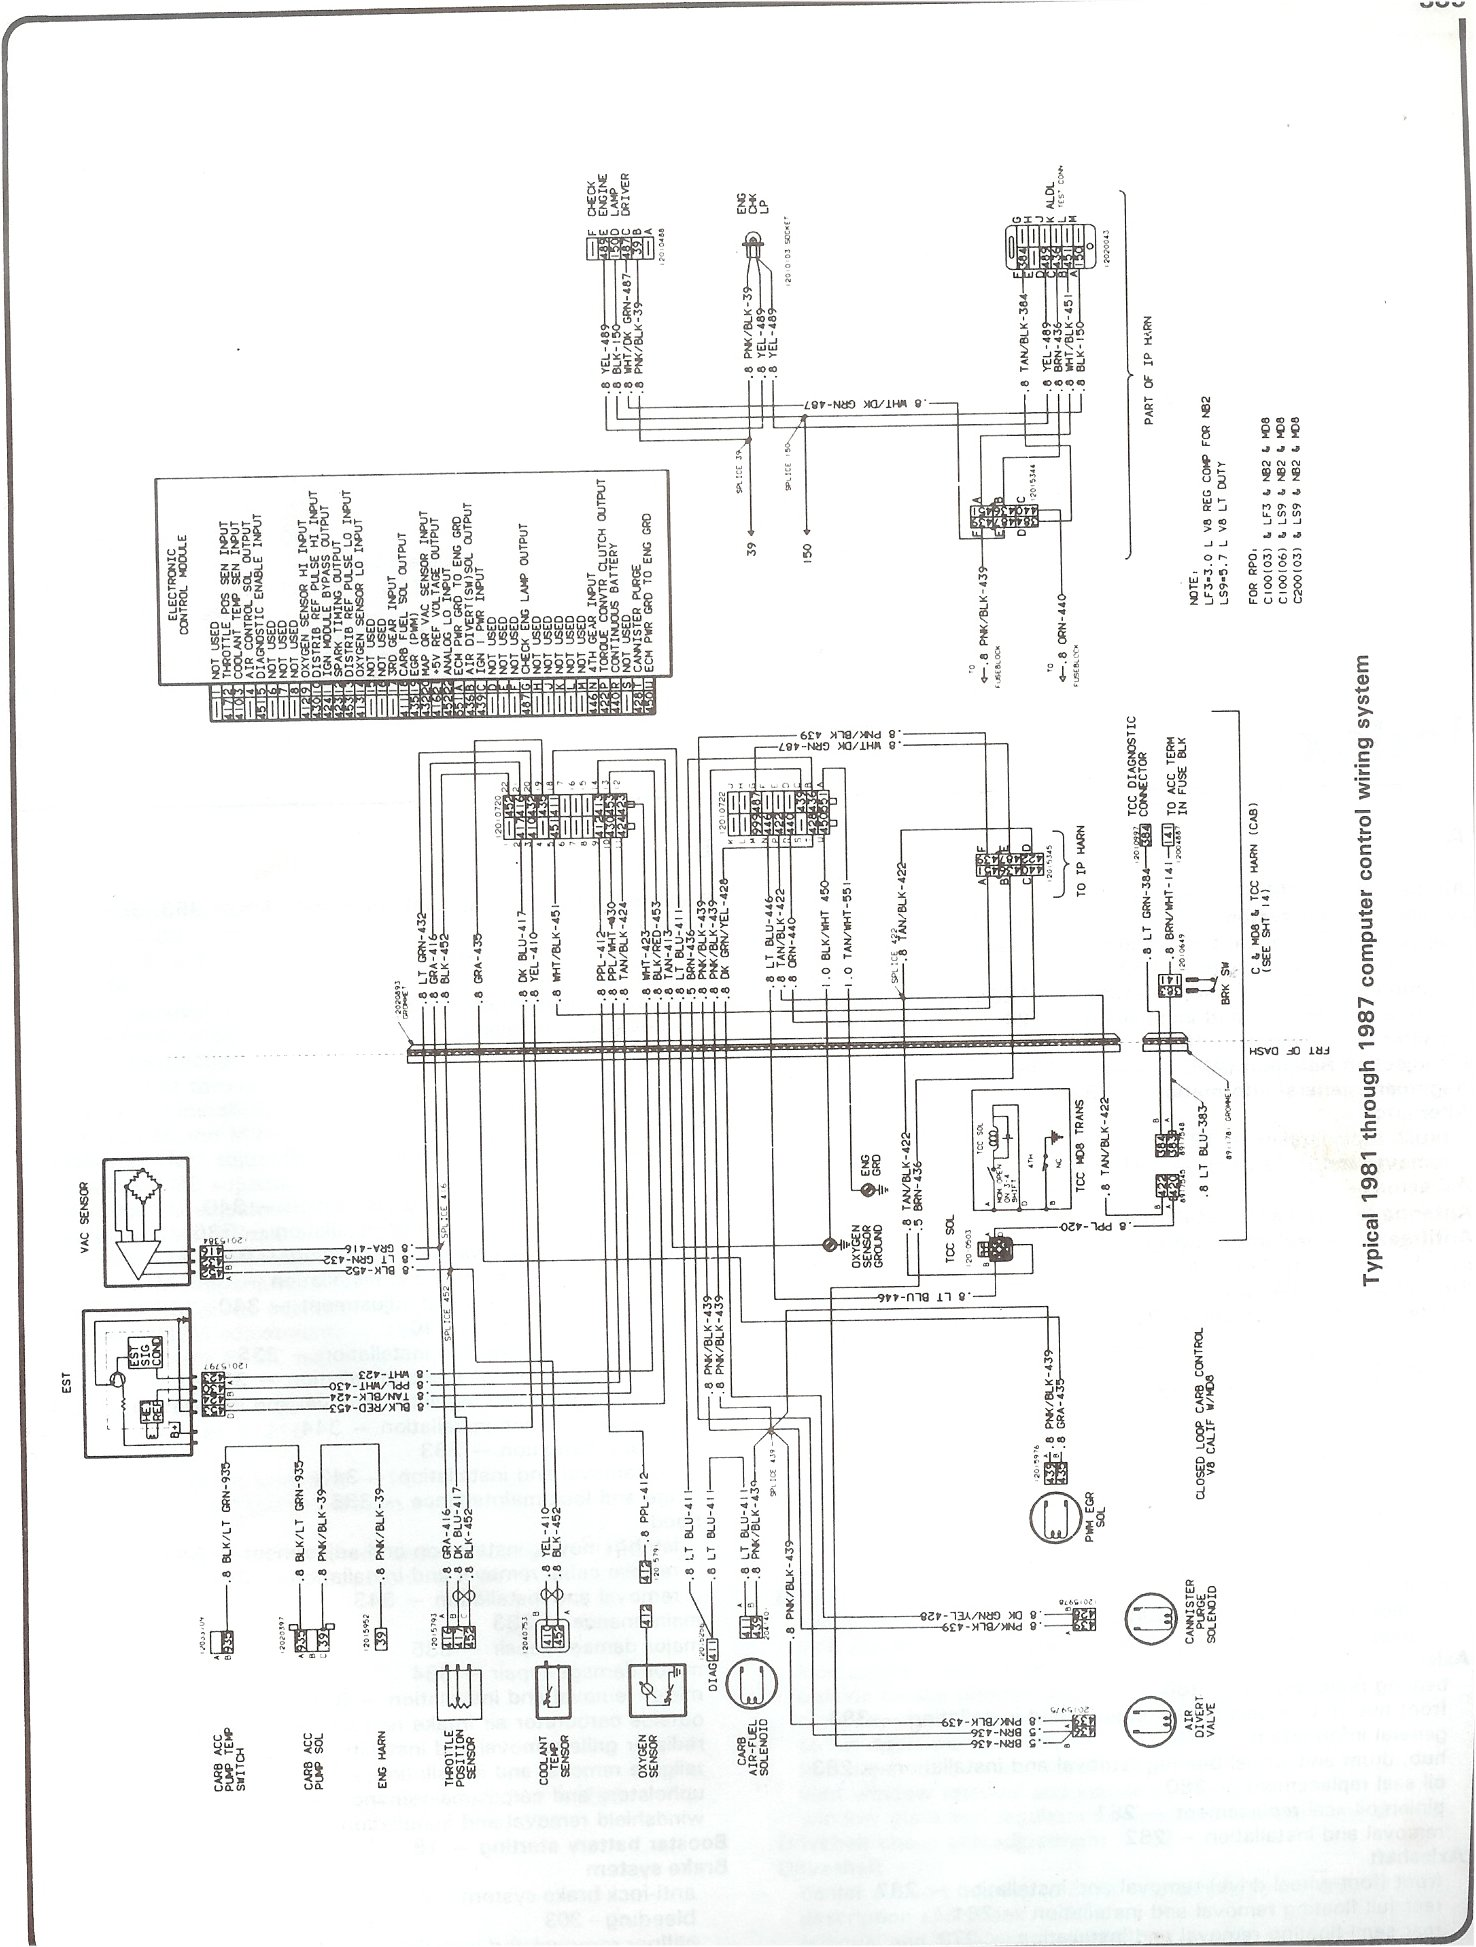 complete 73 87 wiring diagrams rh forum 73 87chevytrucks com 87 chevy truck wiring diagram 87 chevy dash wiring diagram